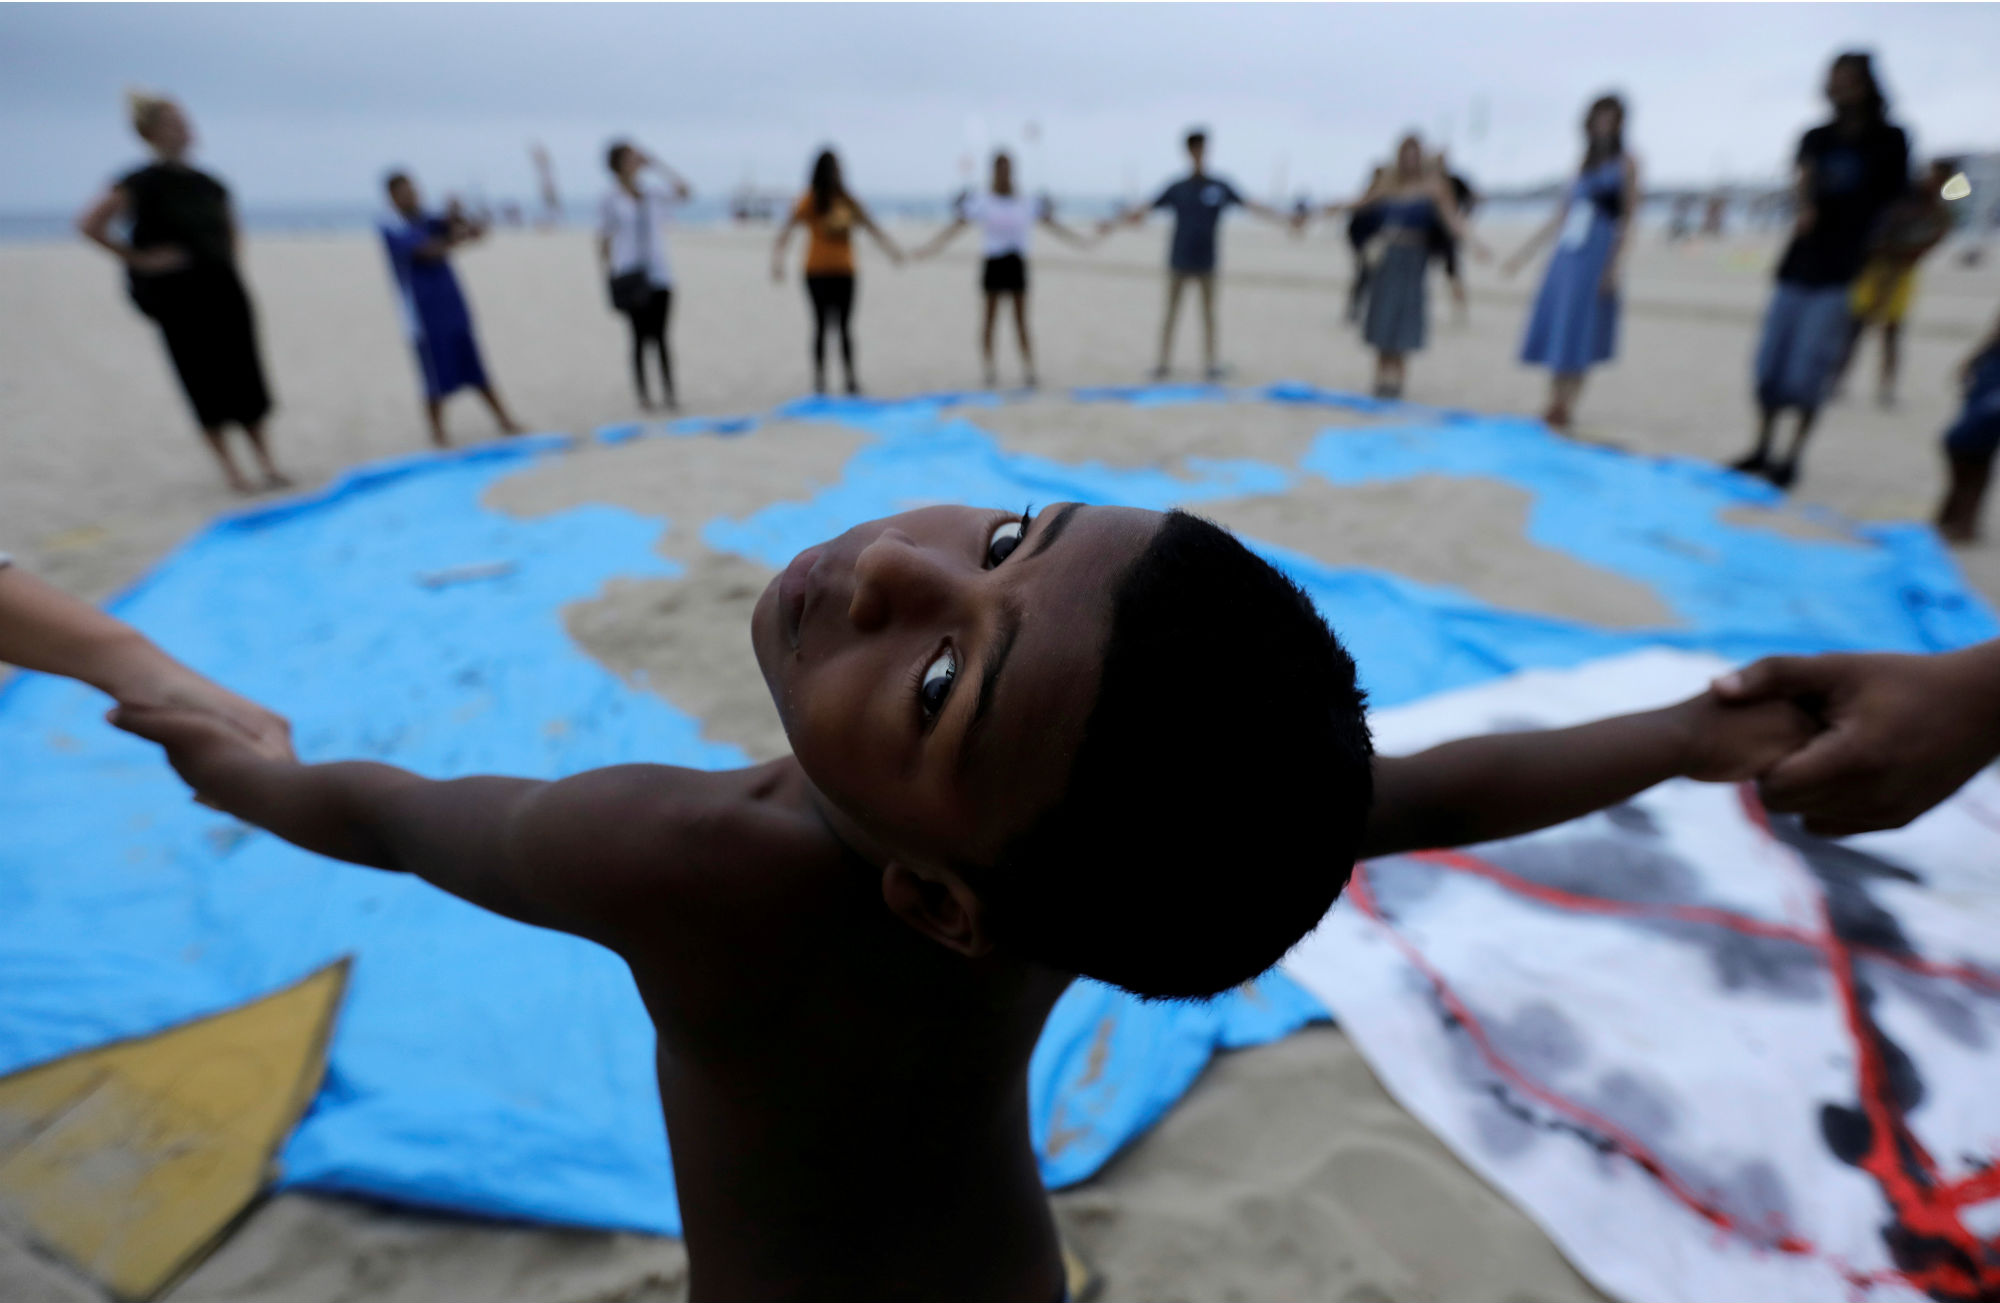 A child and climate change activists attend the Extinction Rebellion protests on Copacabana beach in Rio de Janeiro, Brazil on October 7, 2019. REUTERS/Sergio Moraes